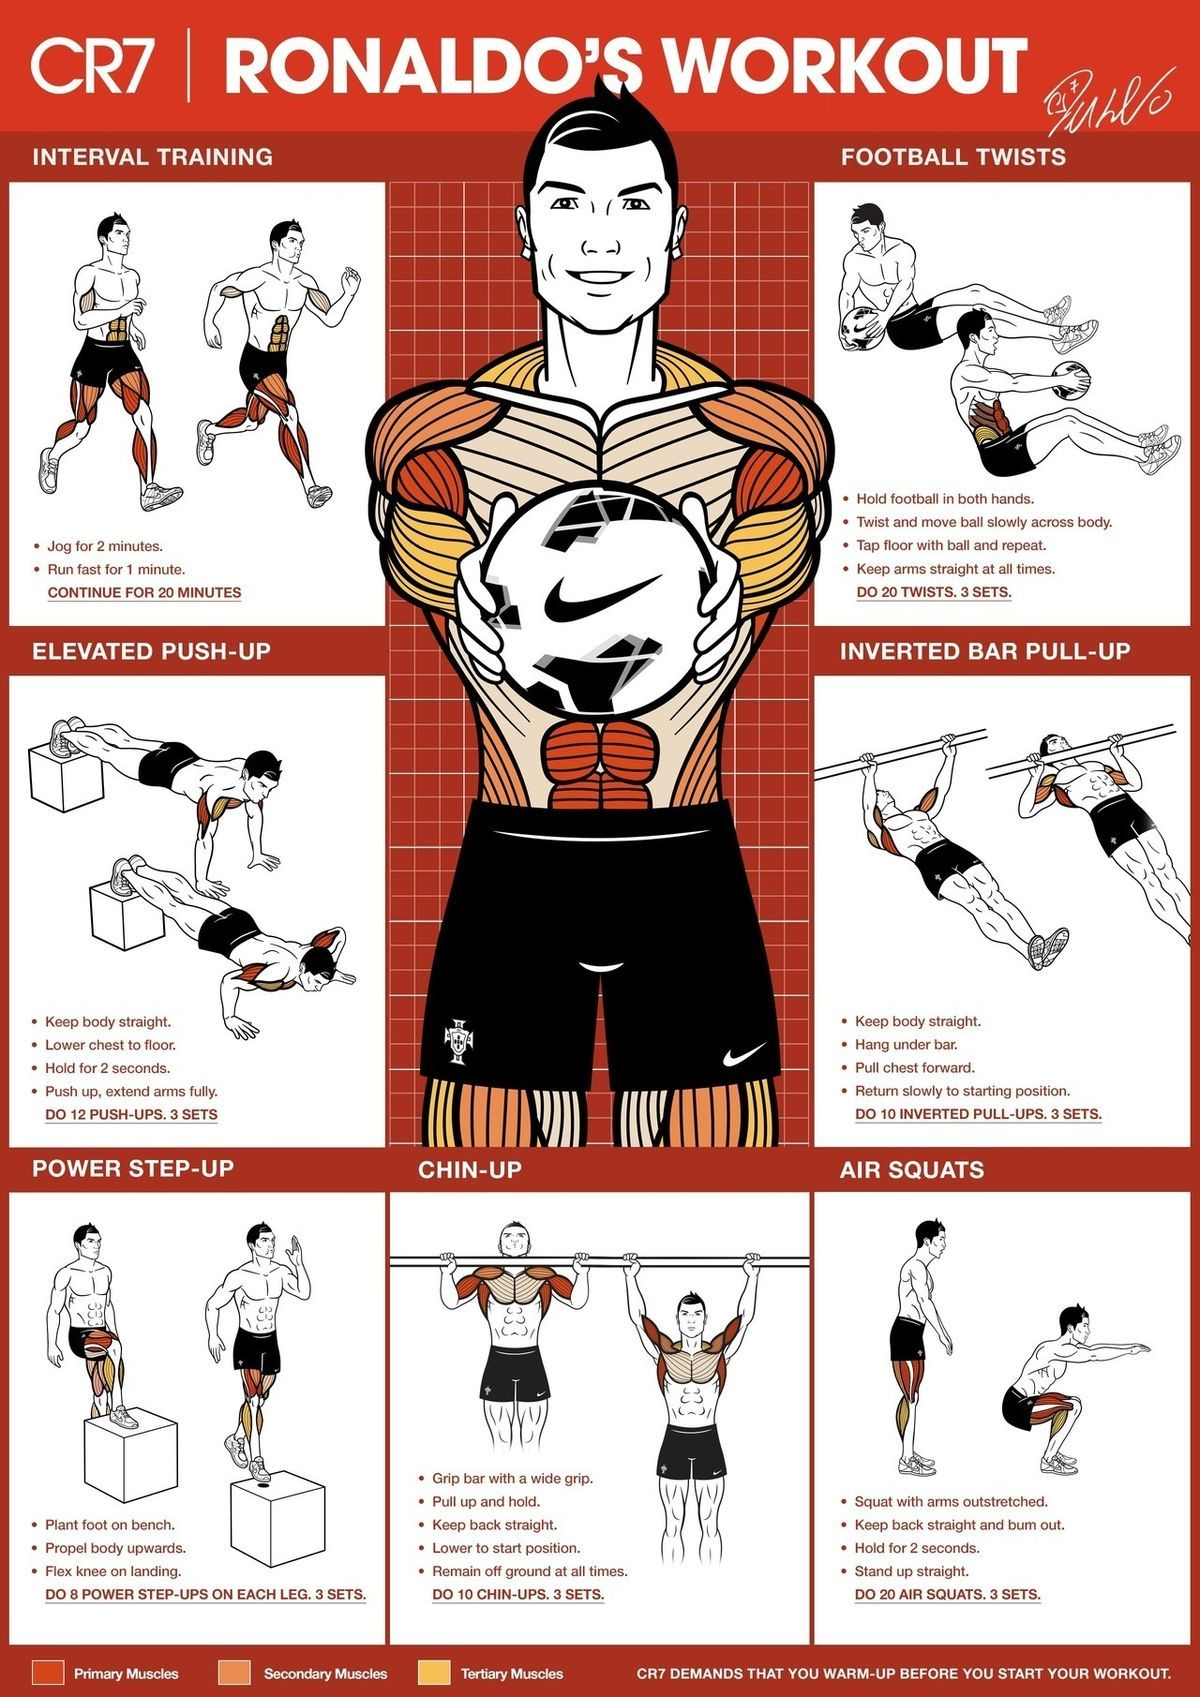 Pin by Saleem on Workout plans | Soccer workouts, Cristiano